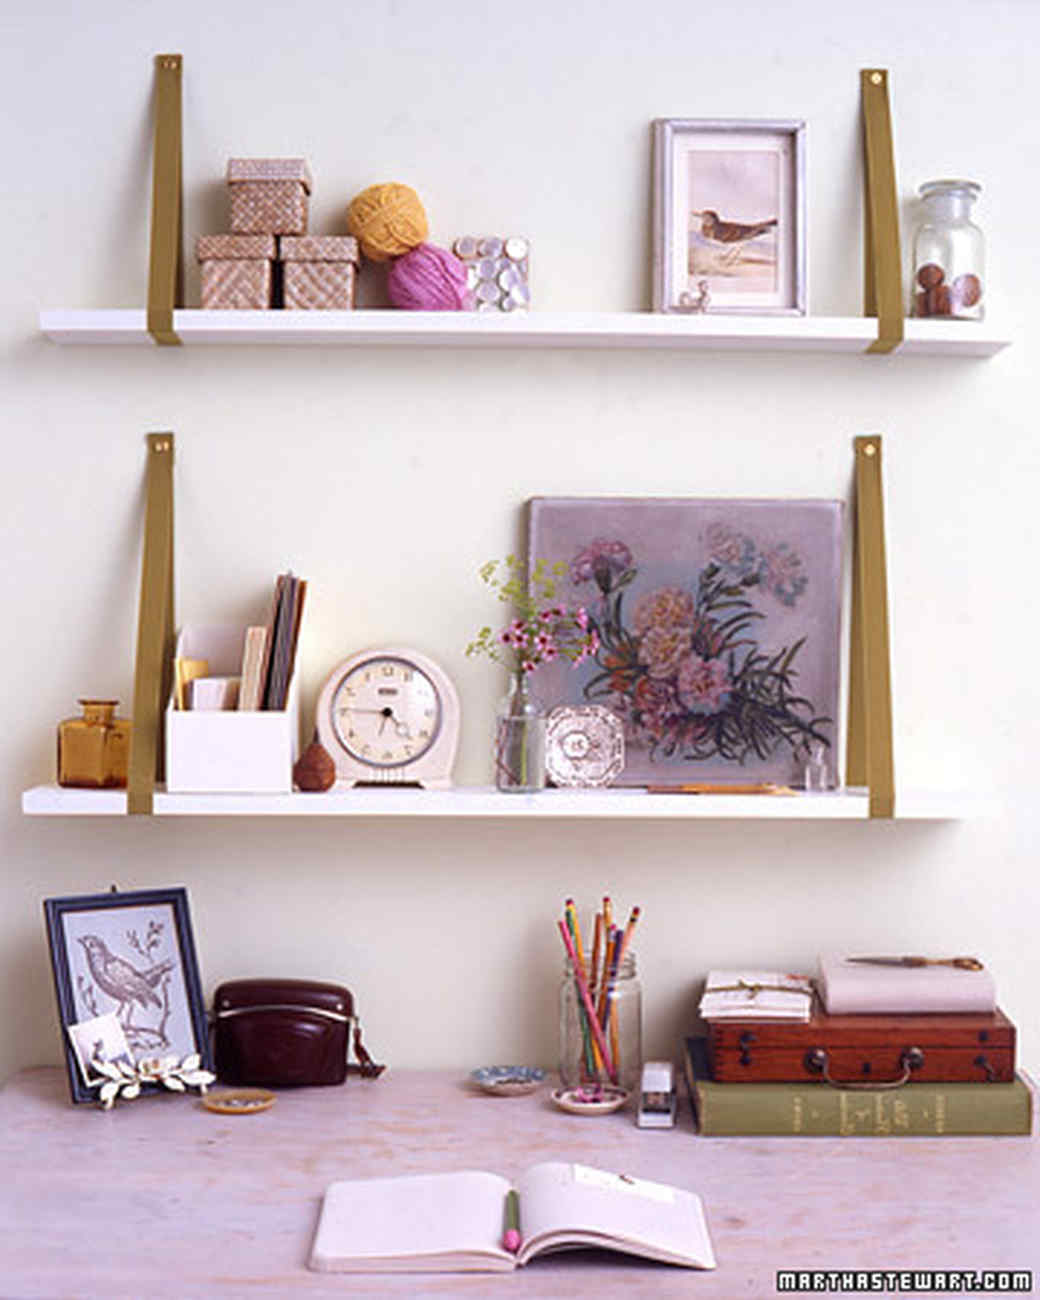 Ribbon-Bracket Shelves